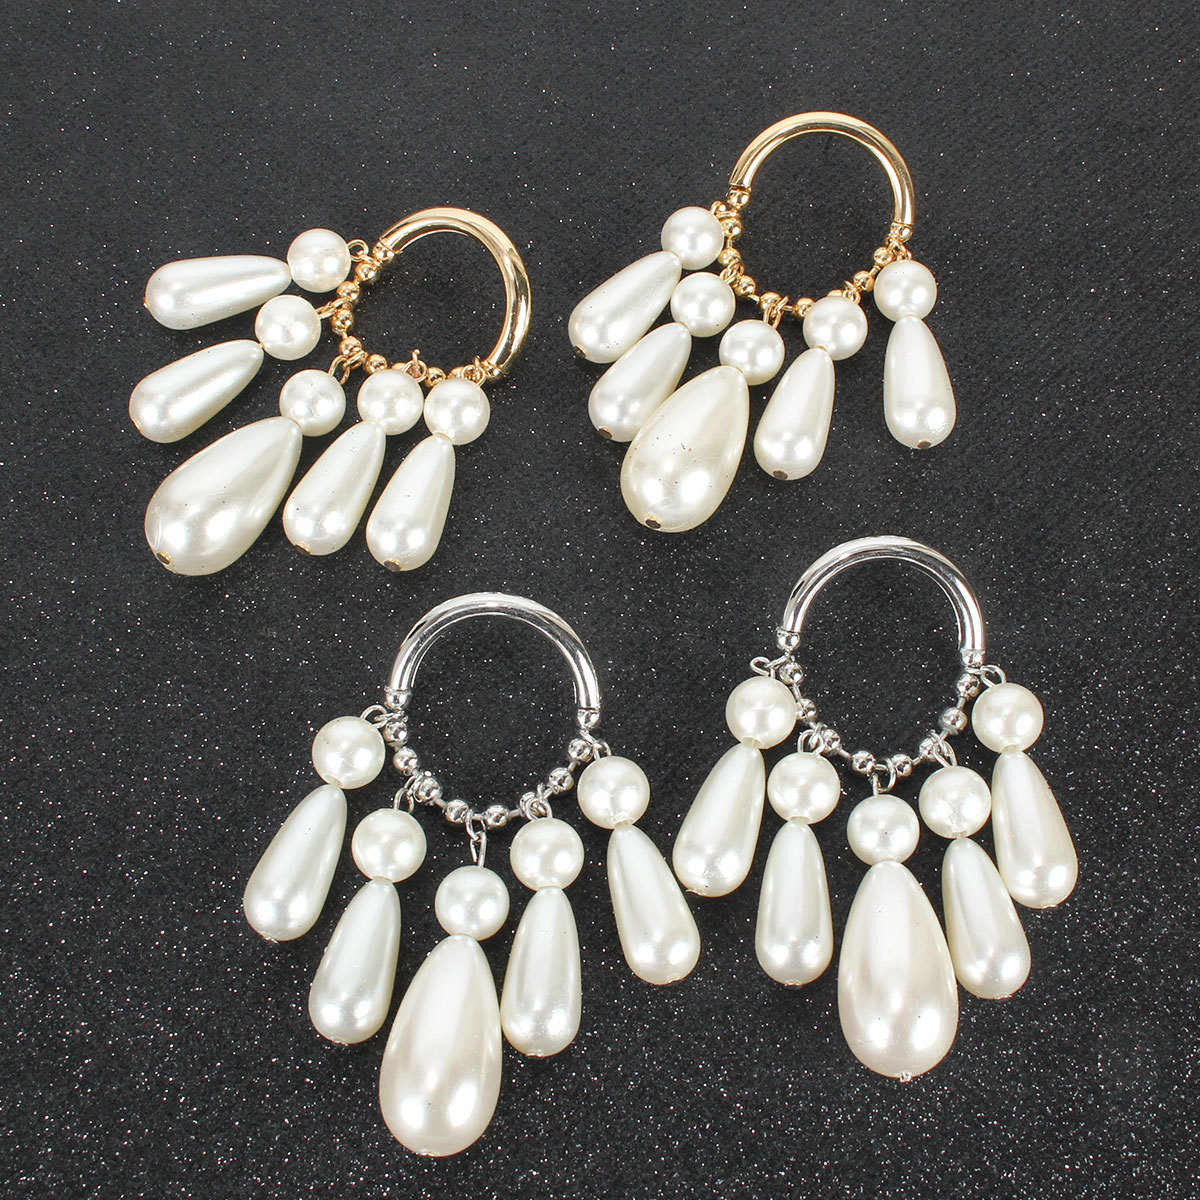 Fashion earrings retro alloy imitation pearl tassel earrings fashion simple earrings NHCT202806